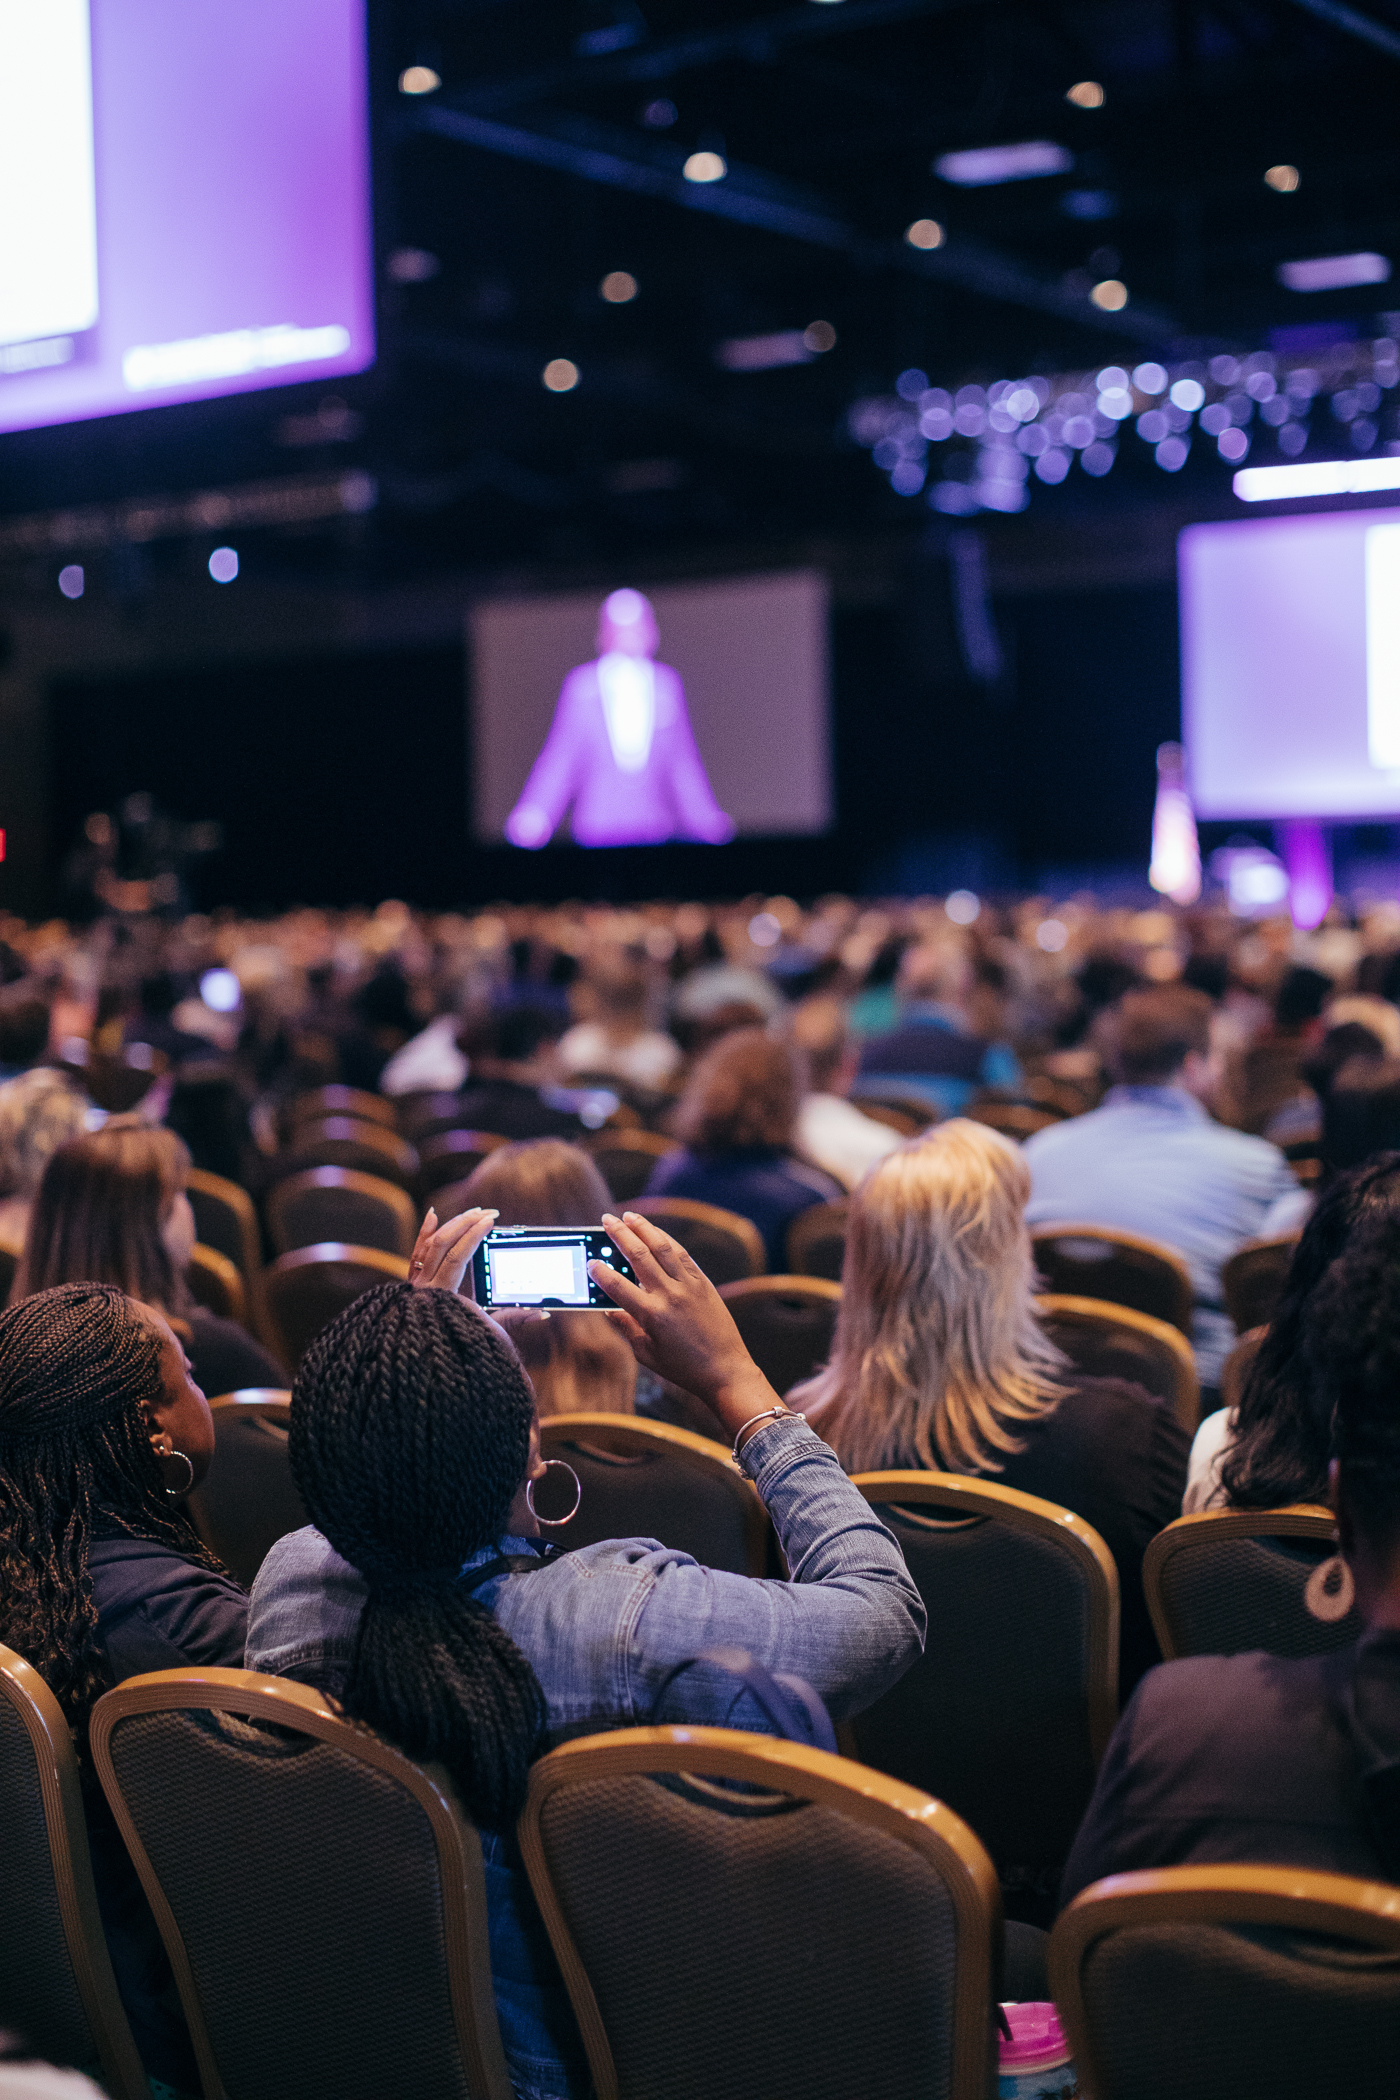 live event commercial photography brand storytelling for education florida conference photographer ©2018abigailbobophotography-99.jpg